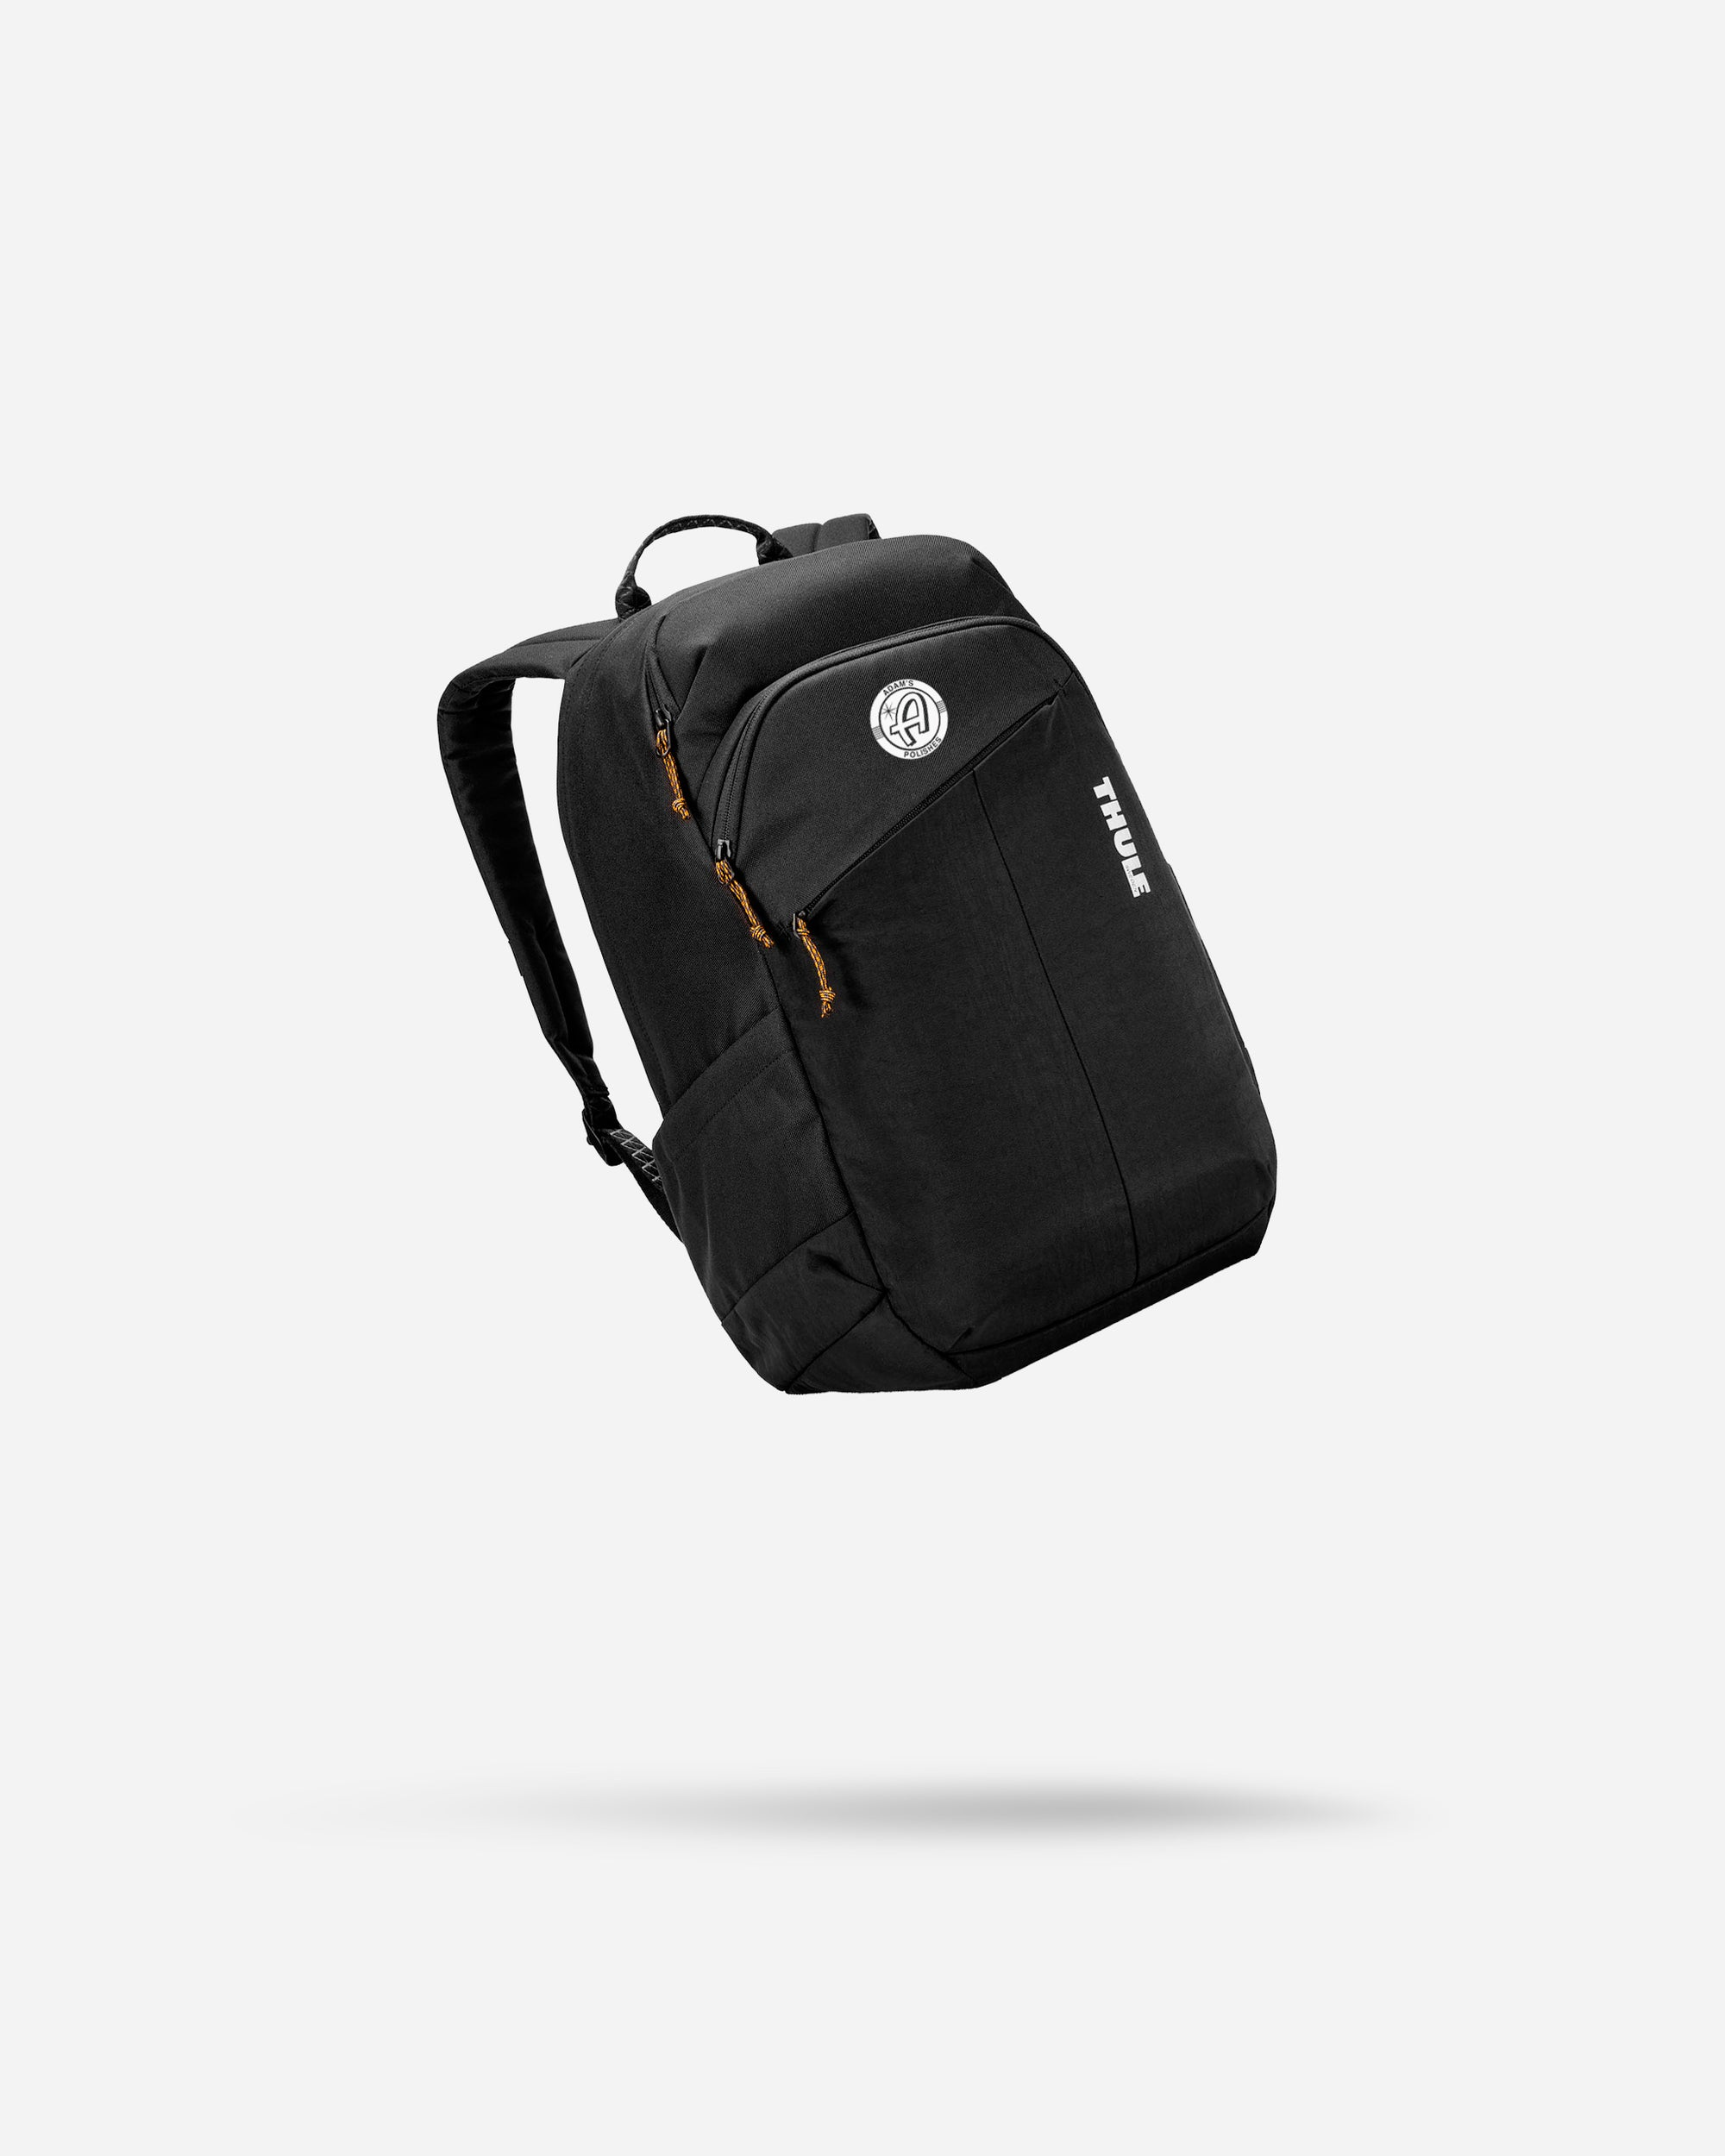 Adam's x Thule Exeo Backpack